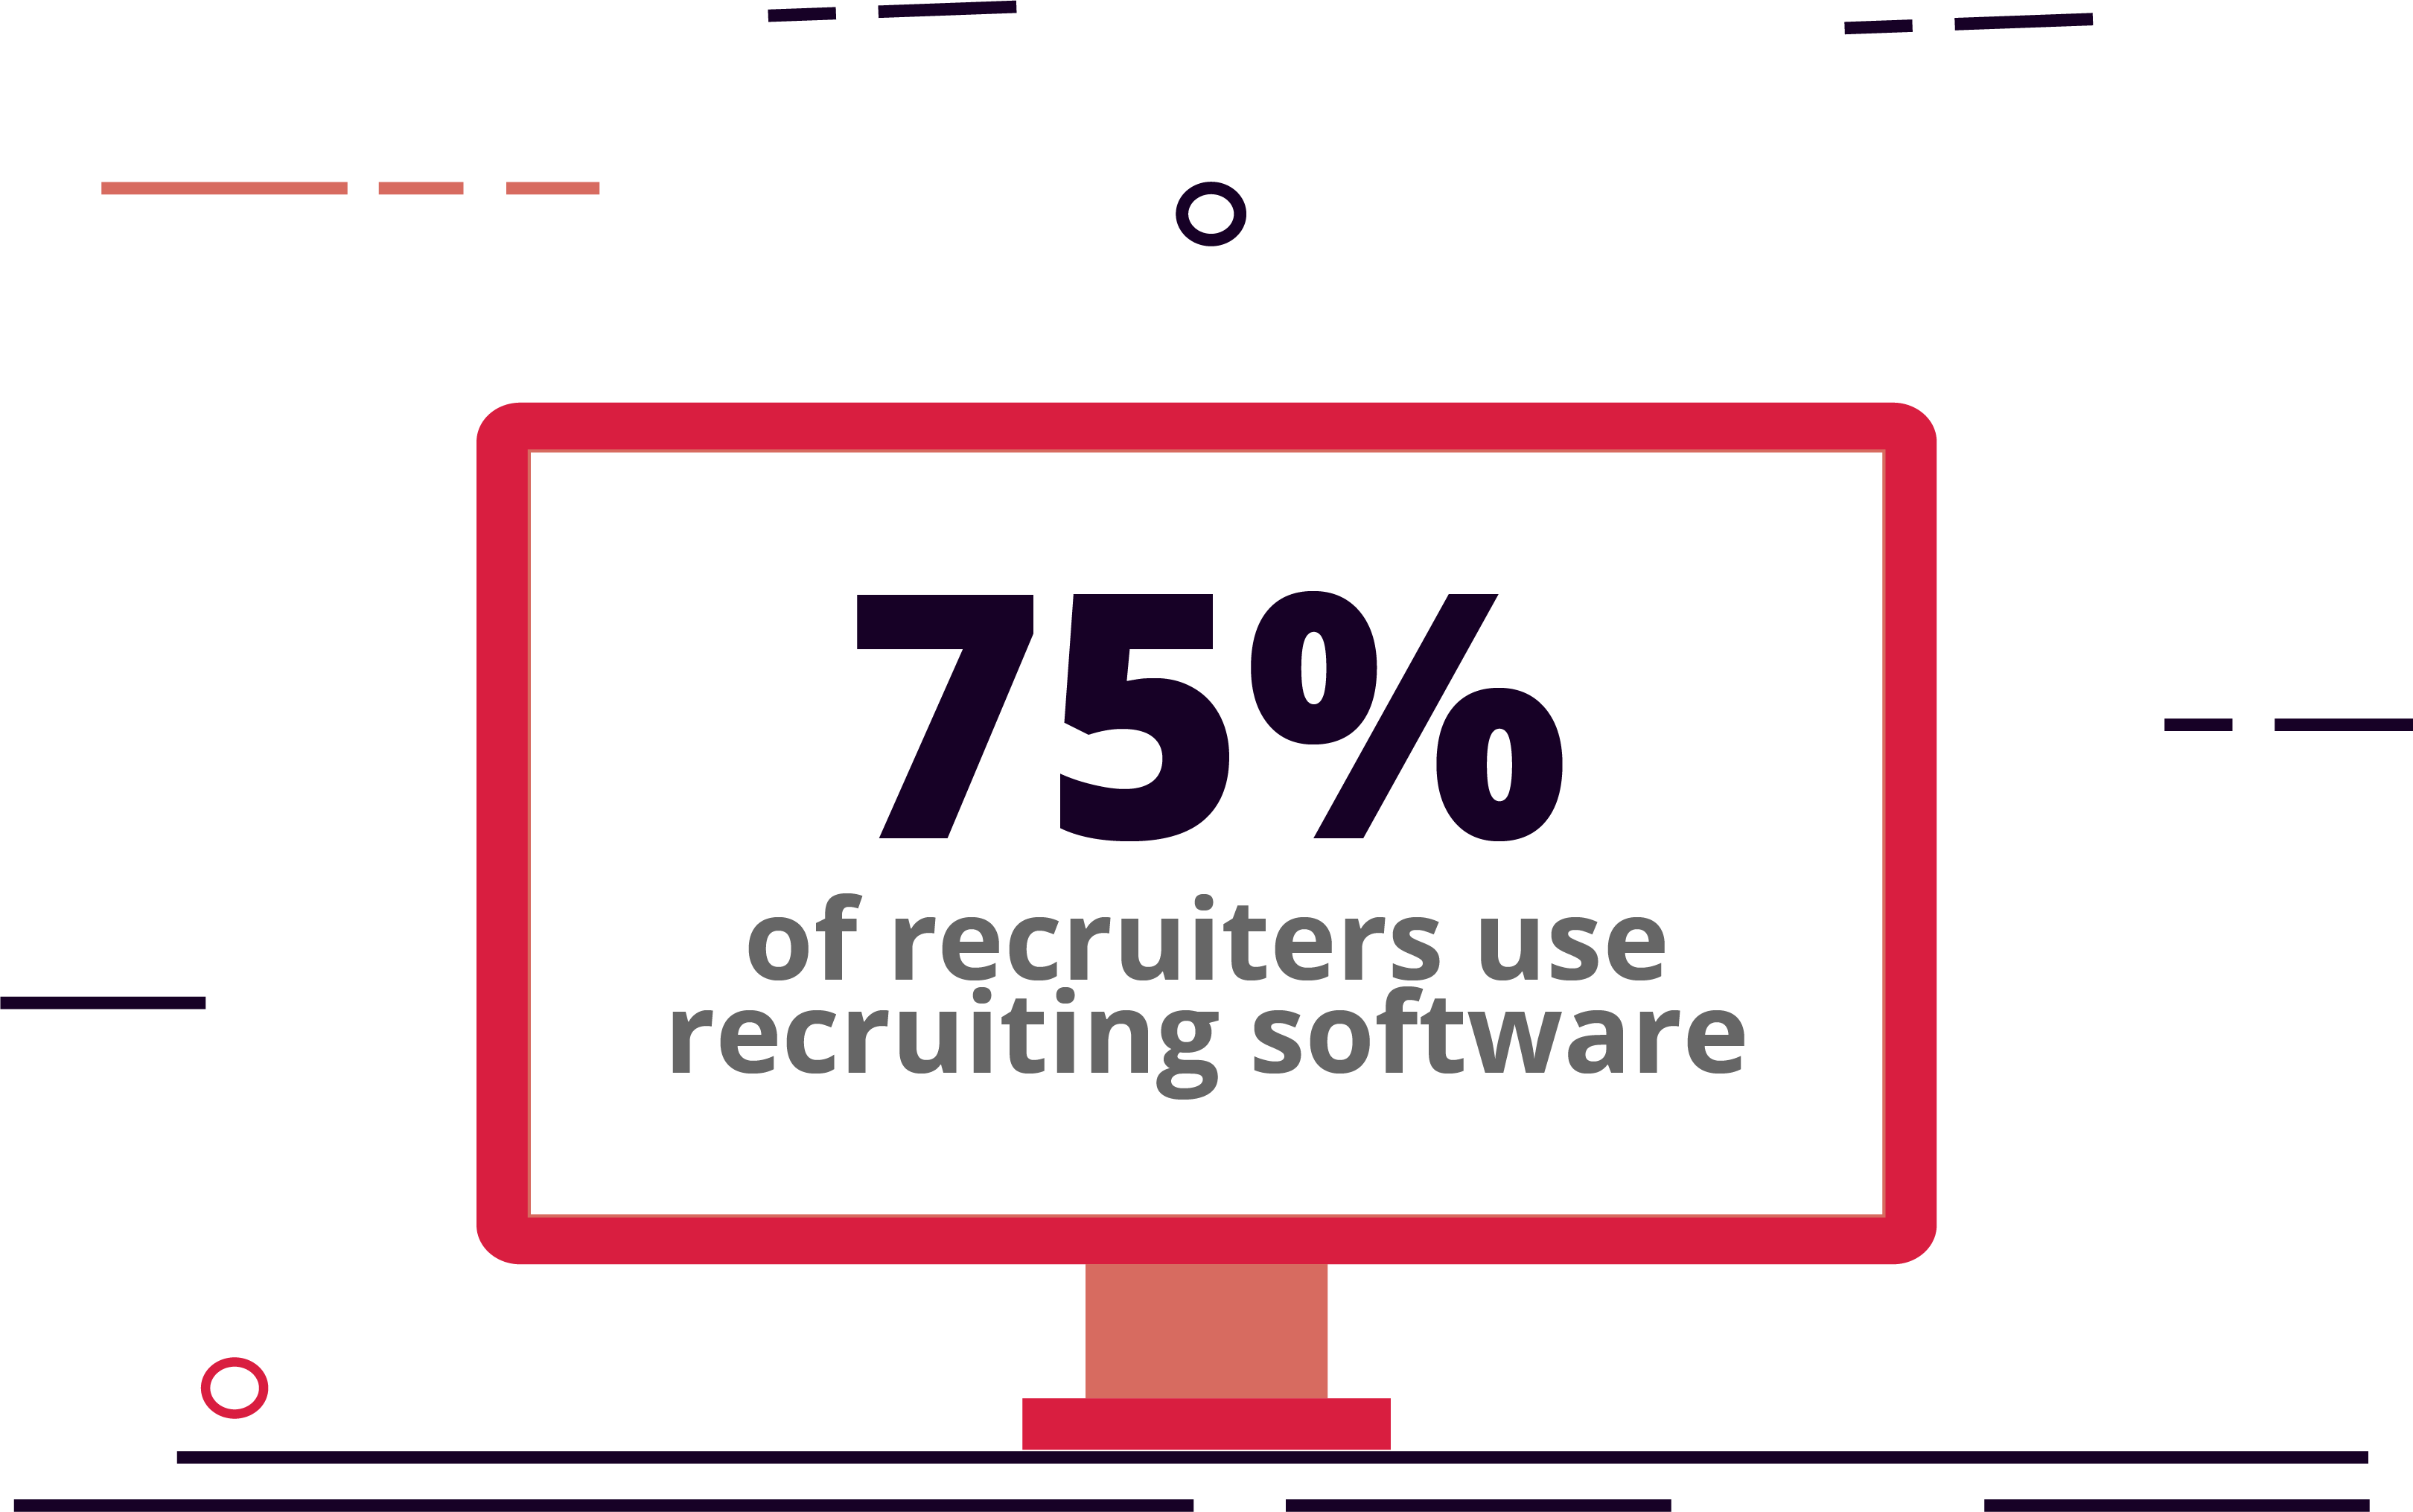 75% of recruiters use recruiting software